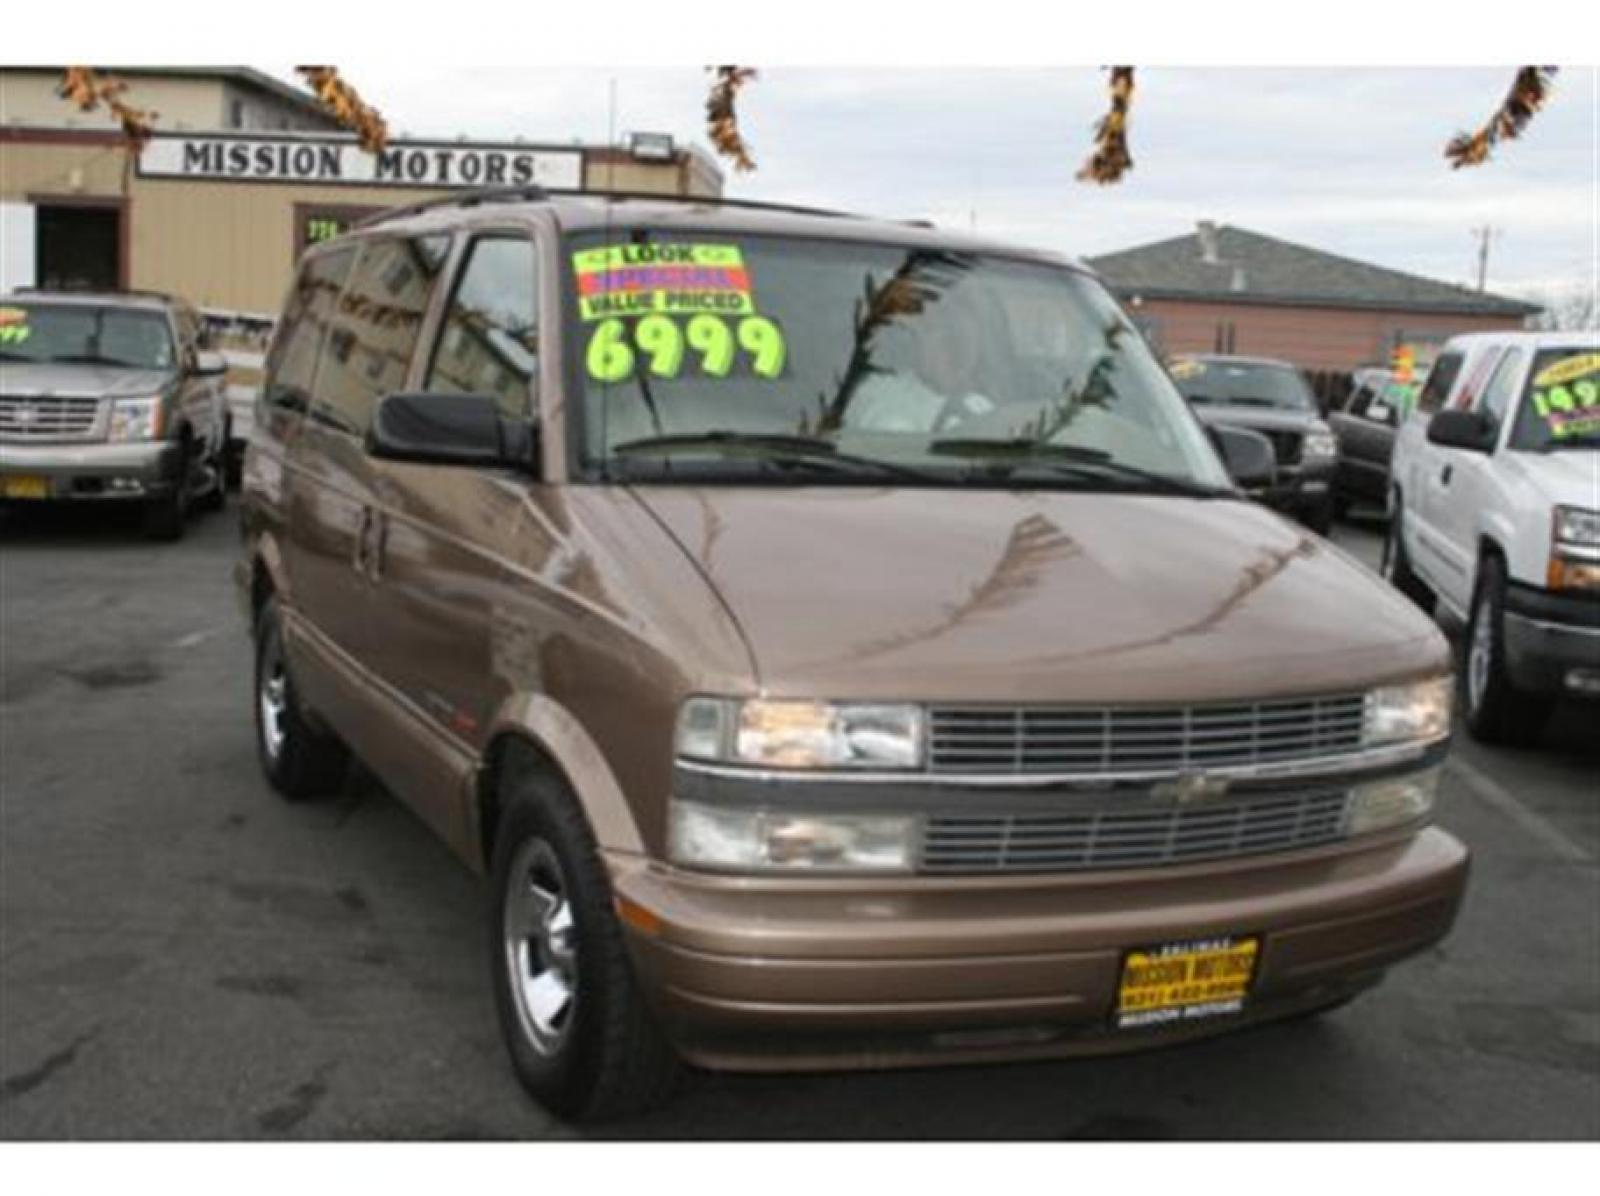 2002 Chevrolet Astro Information And Photos Zombiedrive Wiring Diagram 800 1024 1280 1600 Origin